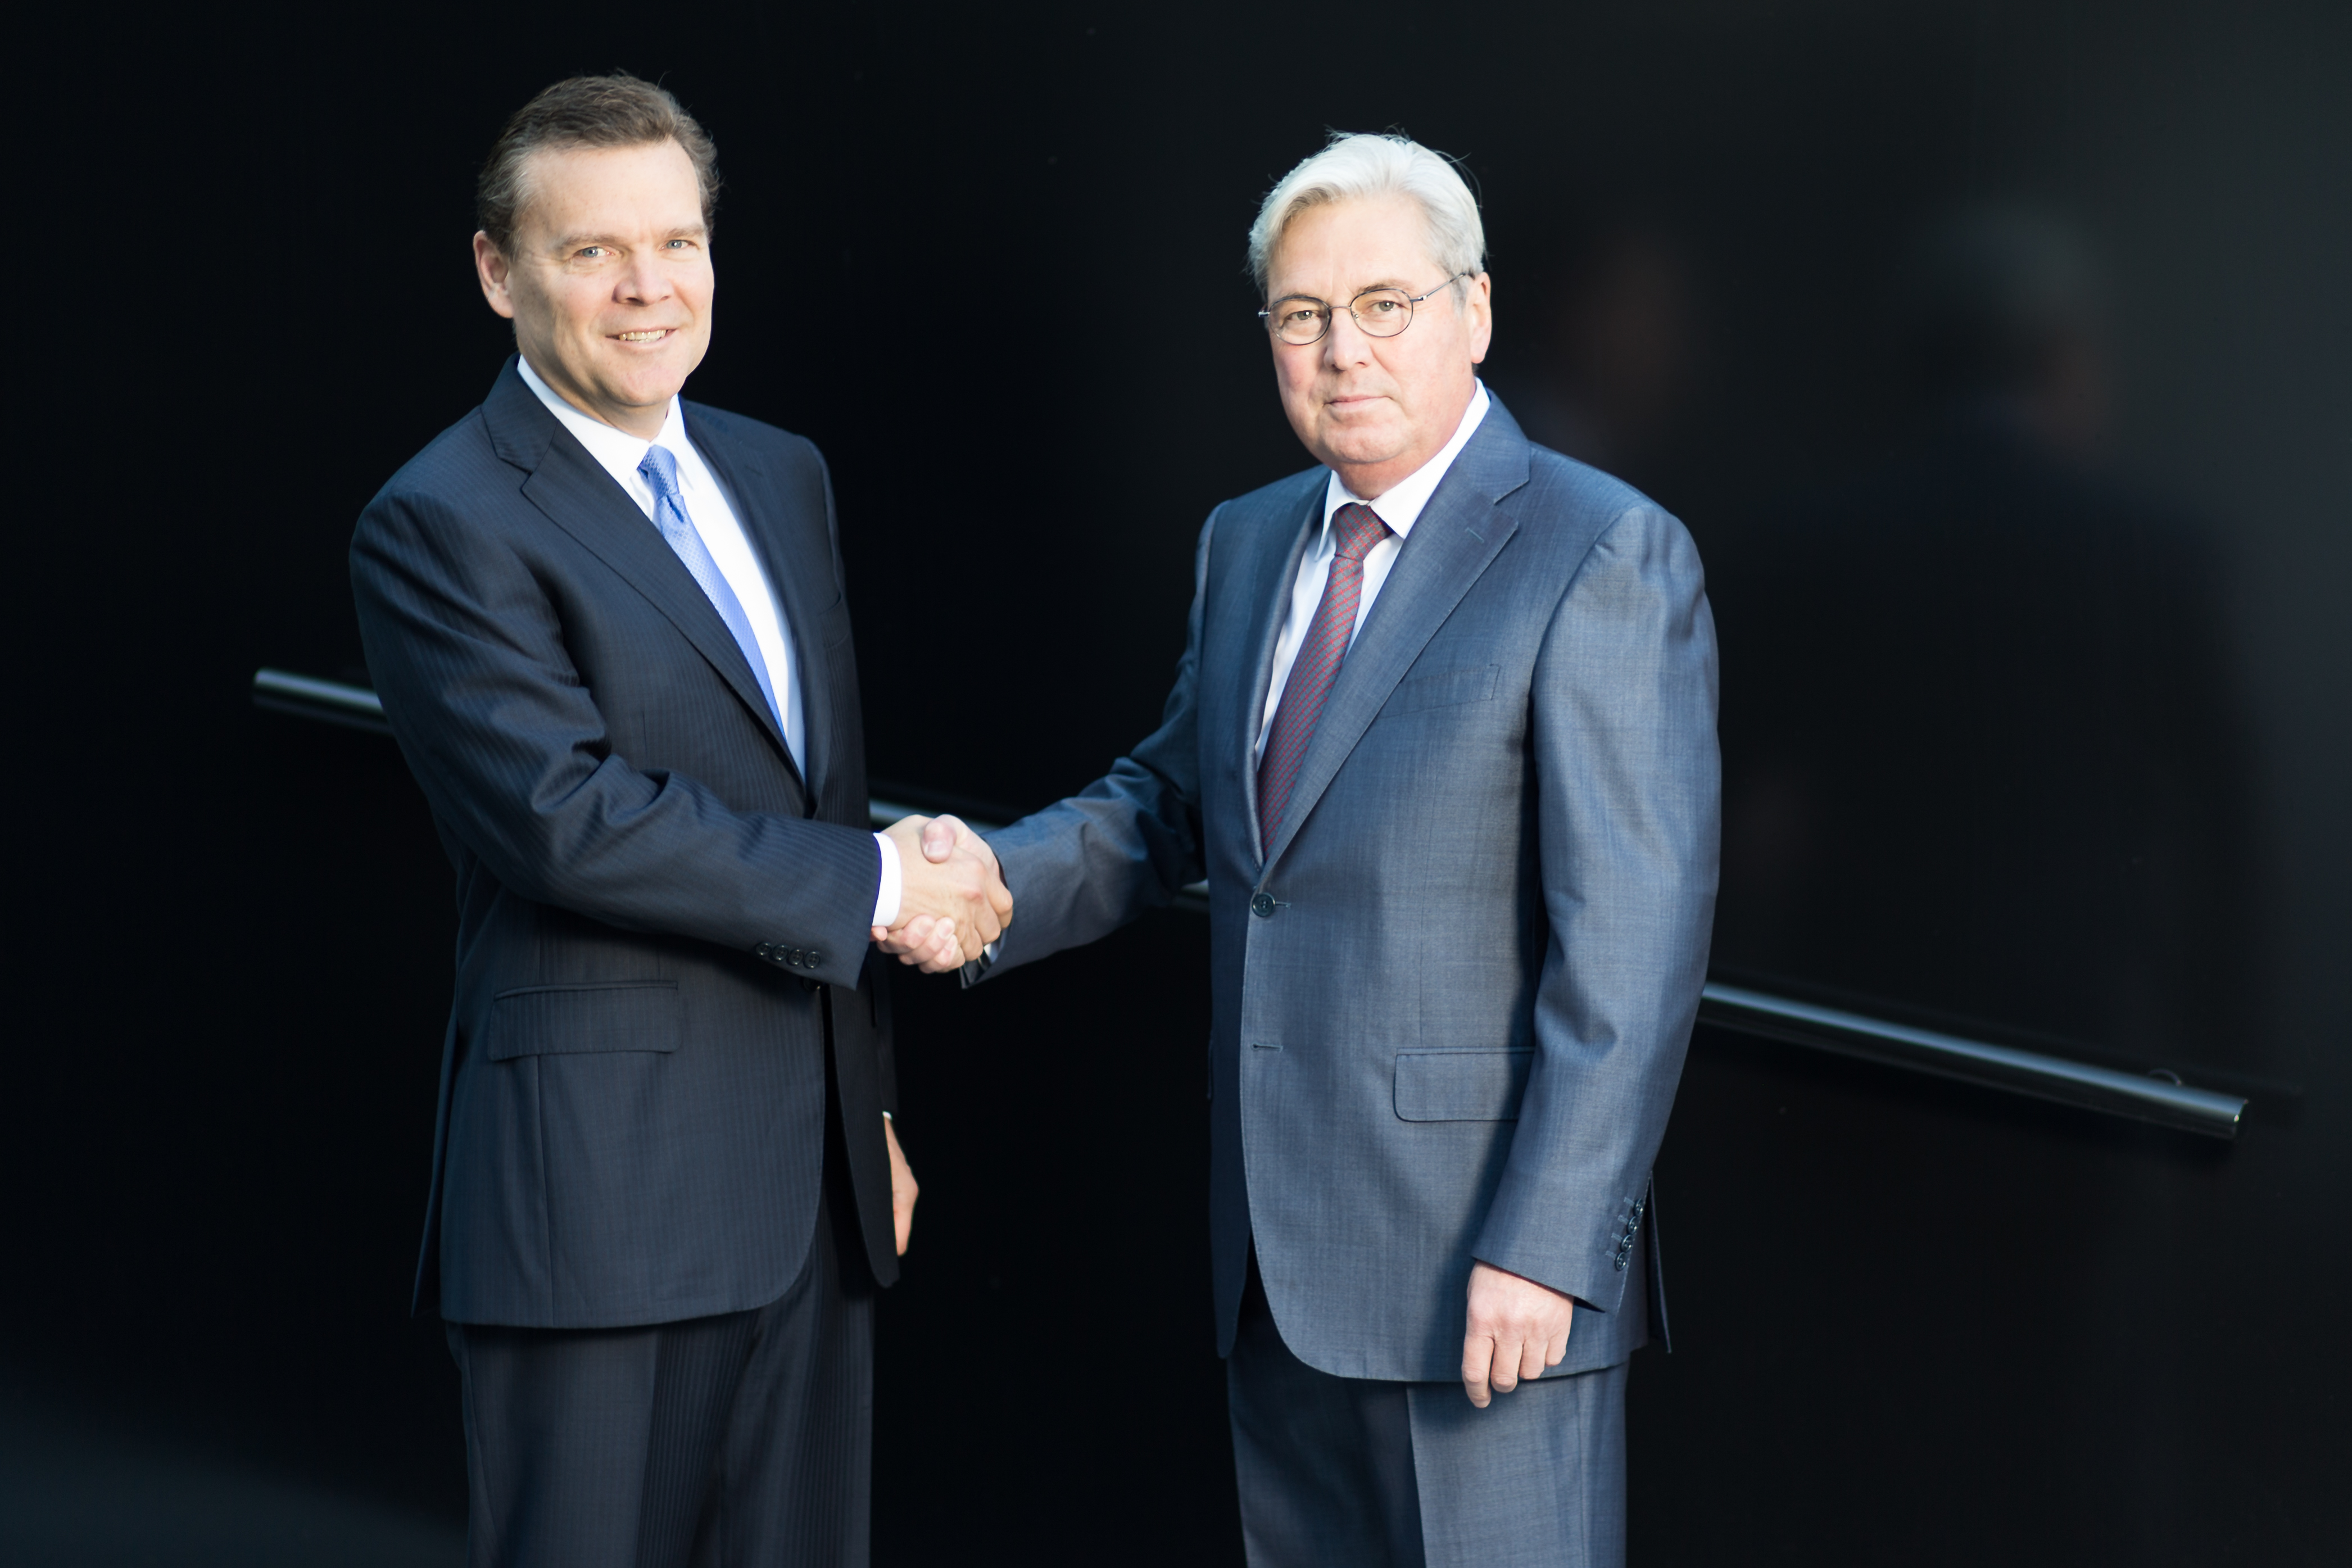 Peter R. Huntsman (left), President and CEO of Huntsman, and Hariolf Kottmann (right), CEO of Clariant (Source: Clariant)